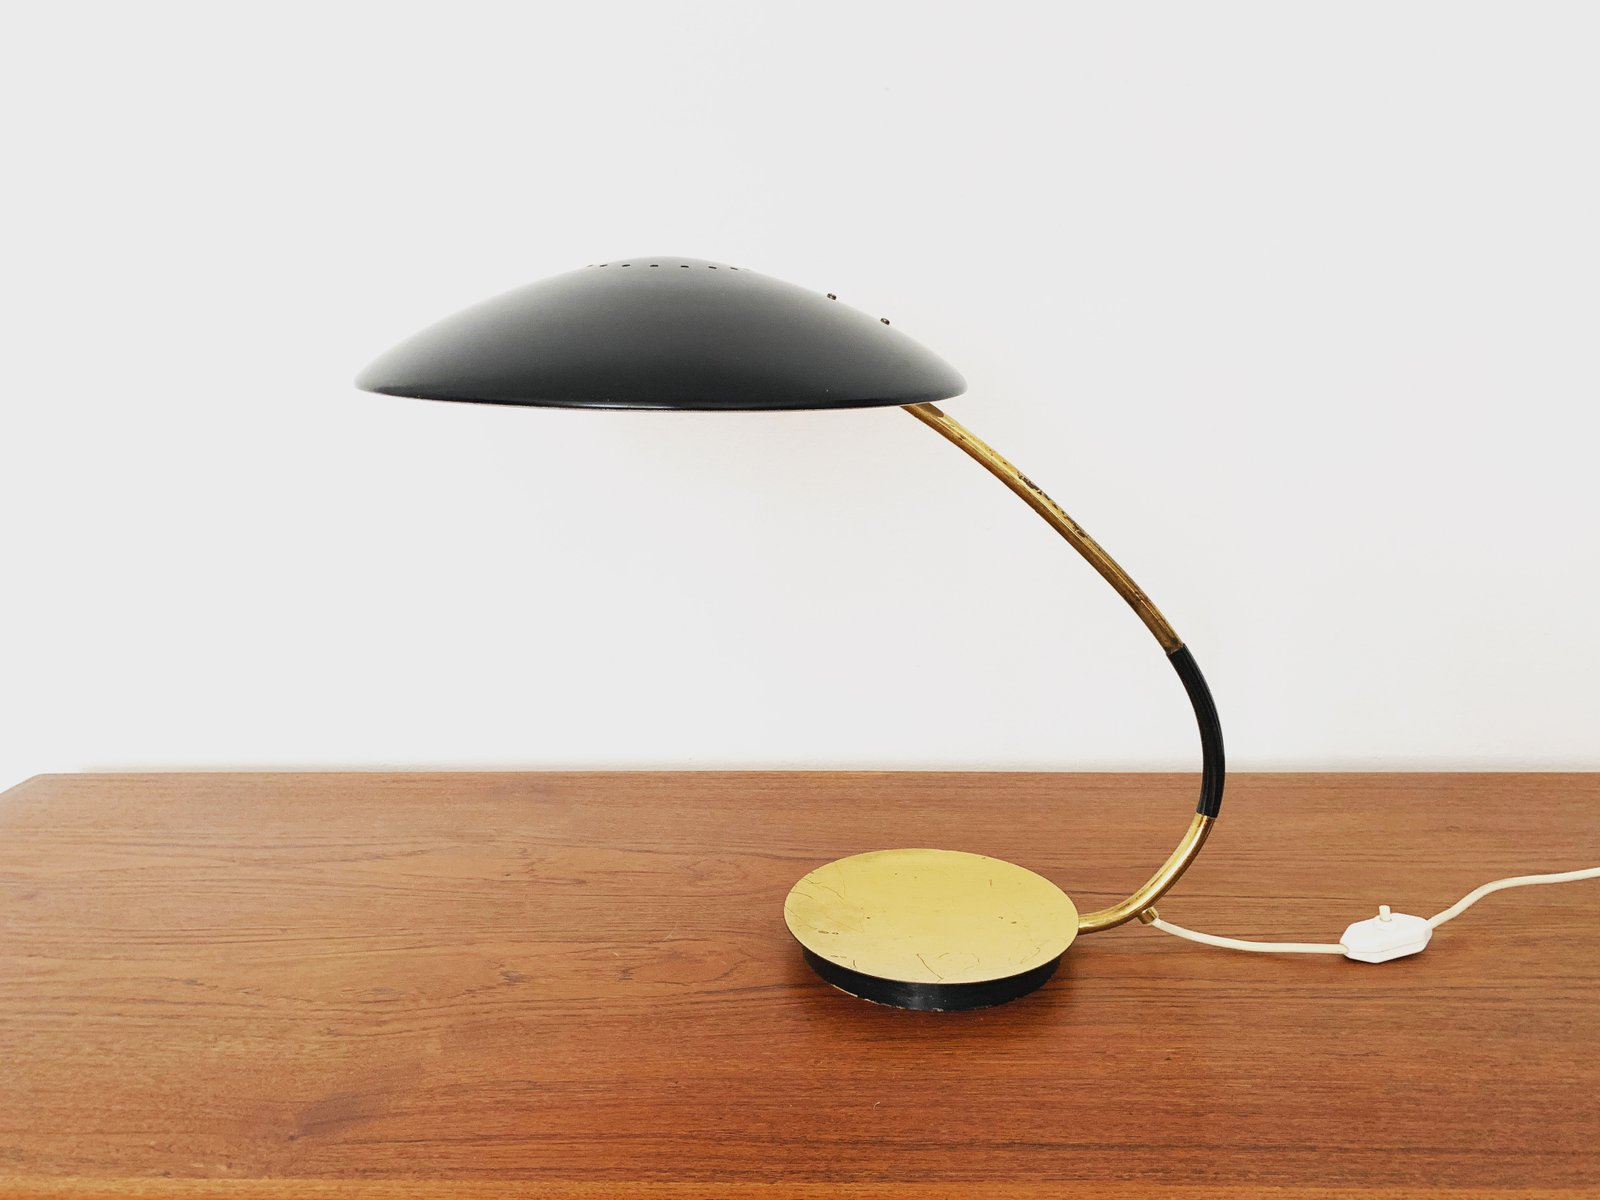 Leuchten Kaiser Mid-century Brass Model 6787 Table Lamp From Kaiser Idell / Kaiser Leuchten, 1950s For Sale At Pamono